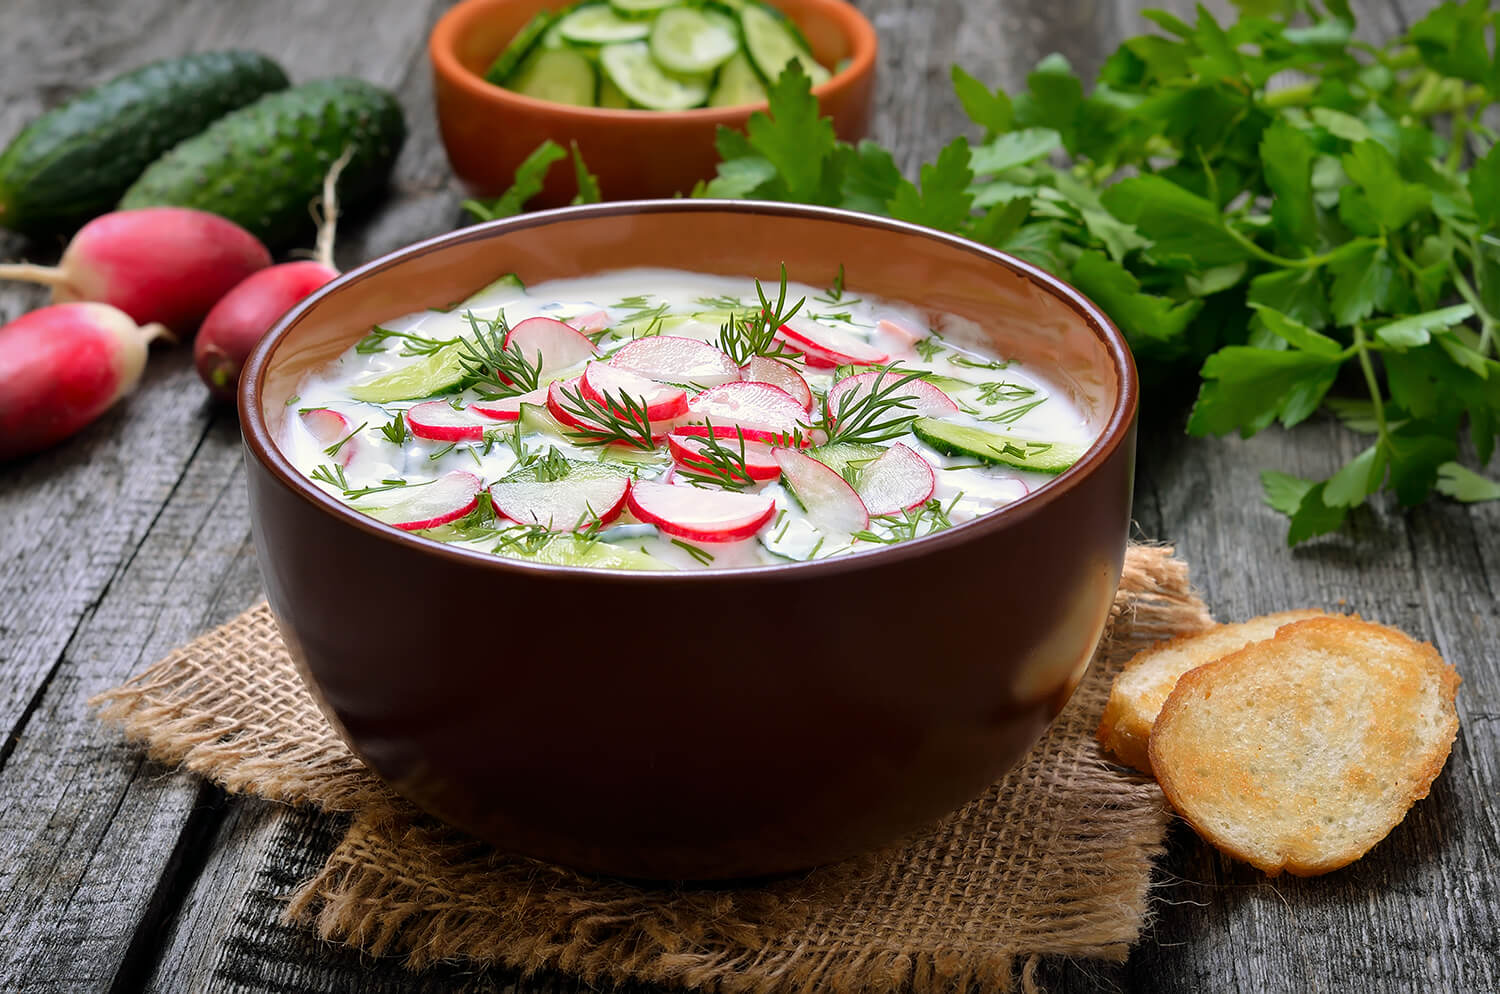 7 benefits of eating soup, no matter the season